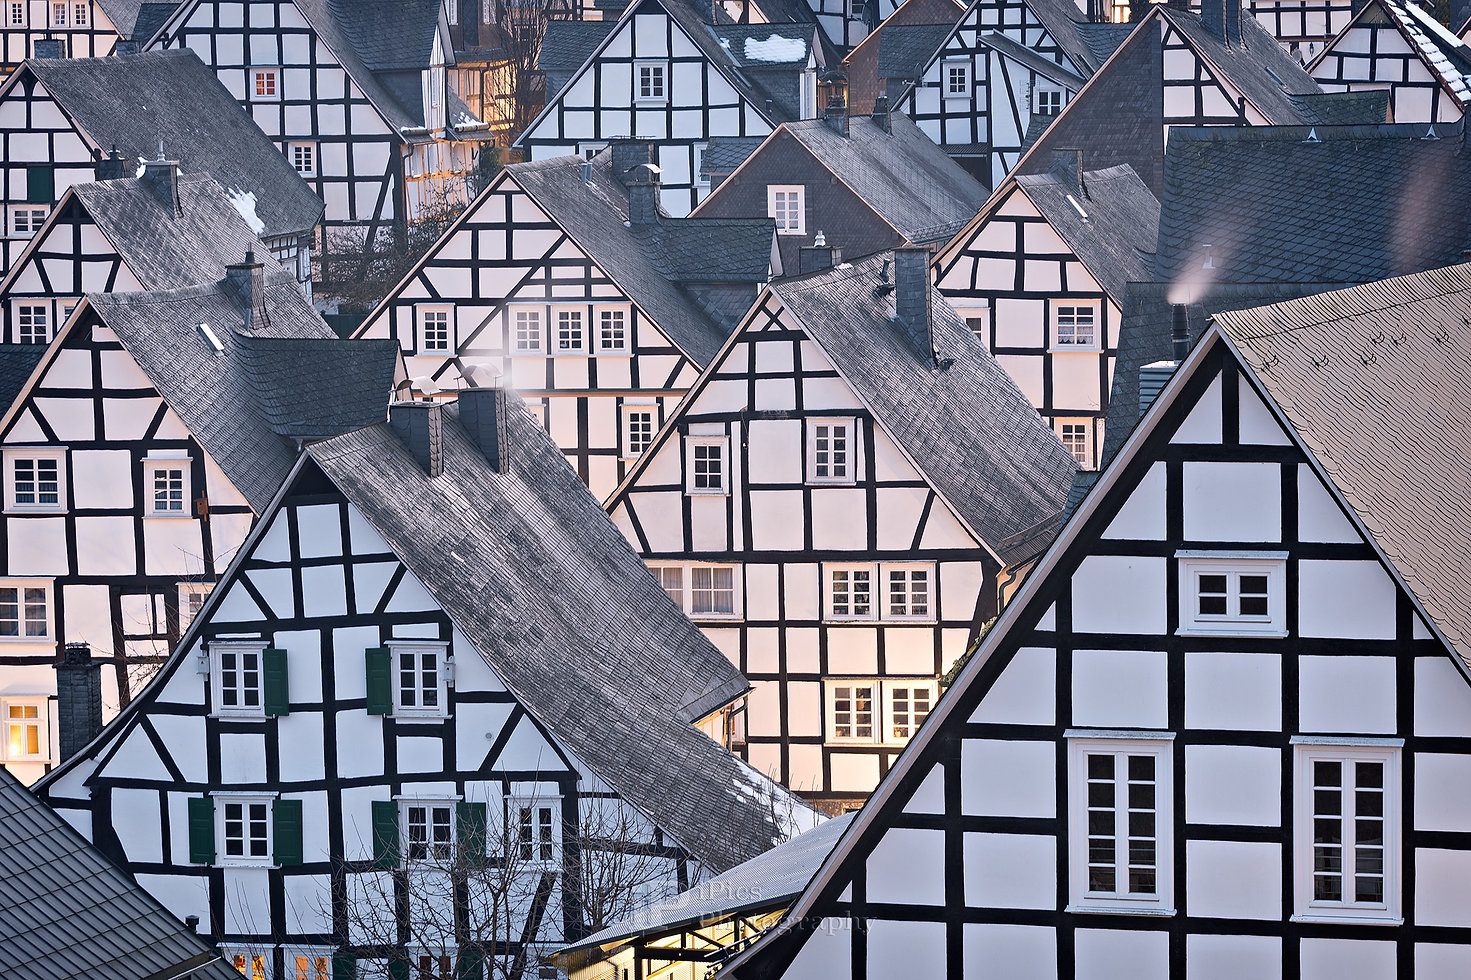 Detail of the 17th century architecture with half-timbered houses in the colors black and white with smoking chimneys and the lights on in the early evening in Alter Flecken, the city center of Freundenberg, a town close to Winterberg in North Rhine-Westphalia, Germany.